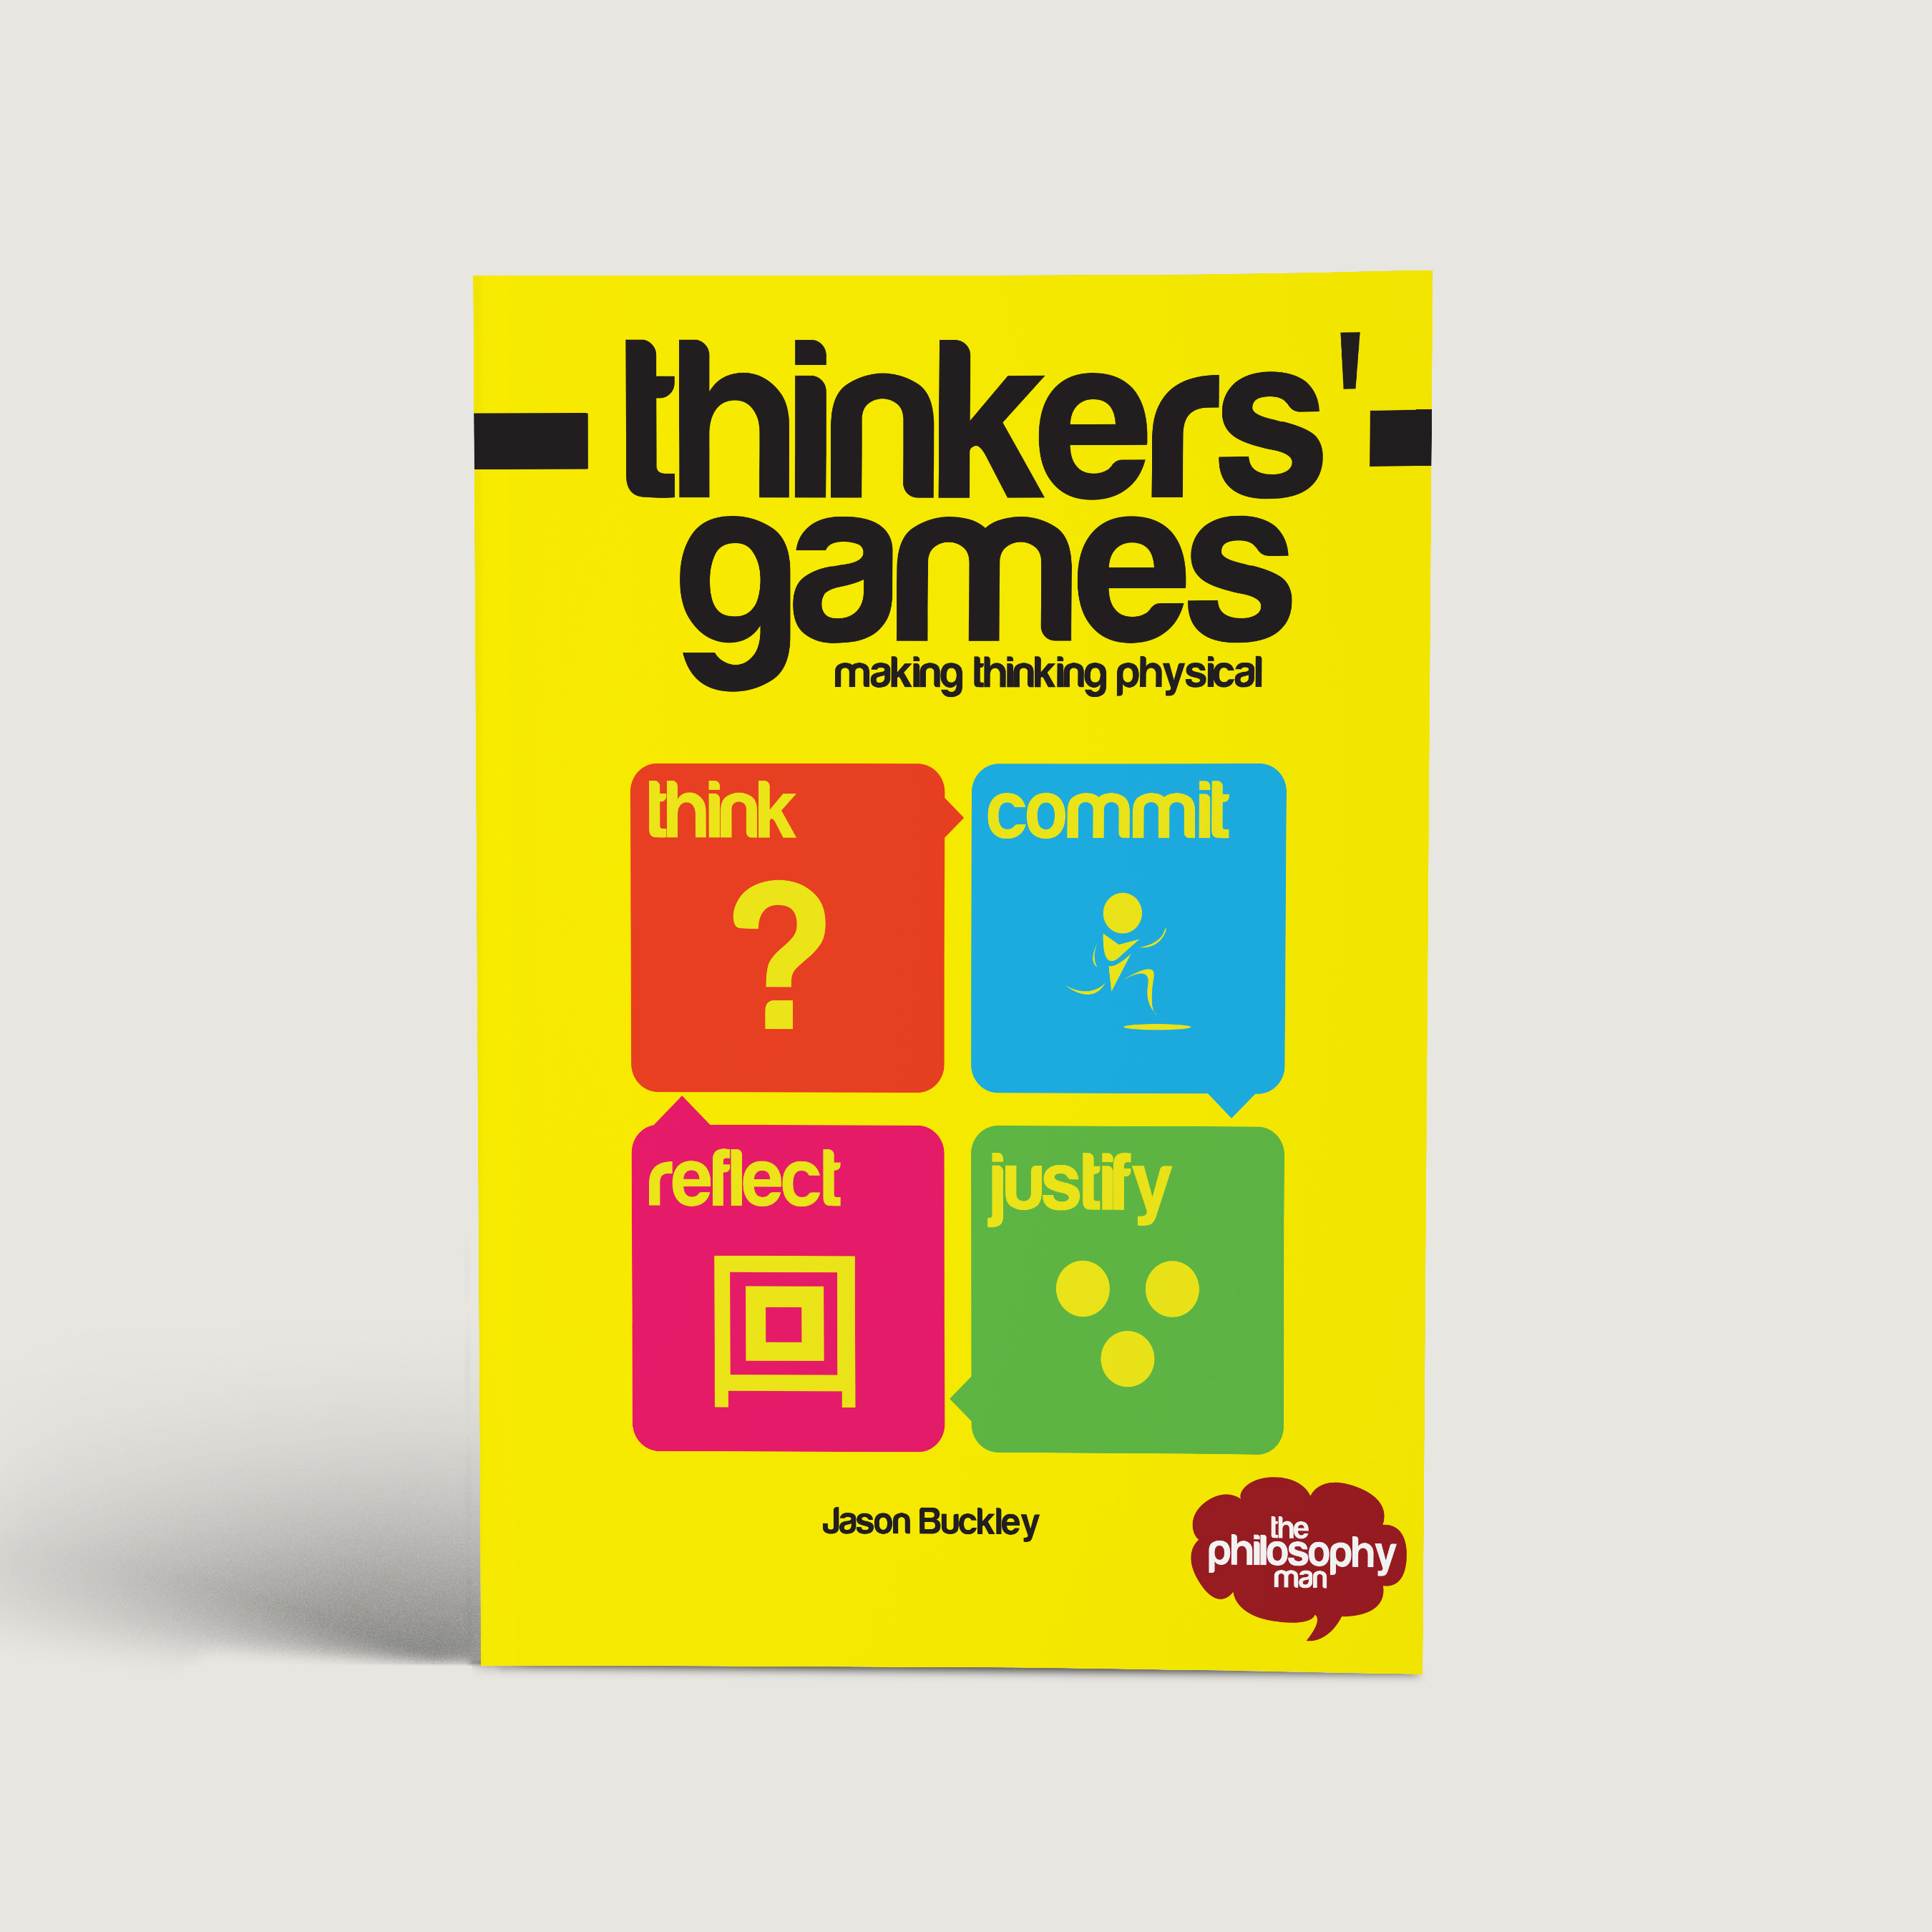 thinkers games making thinking physical the philosophy man